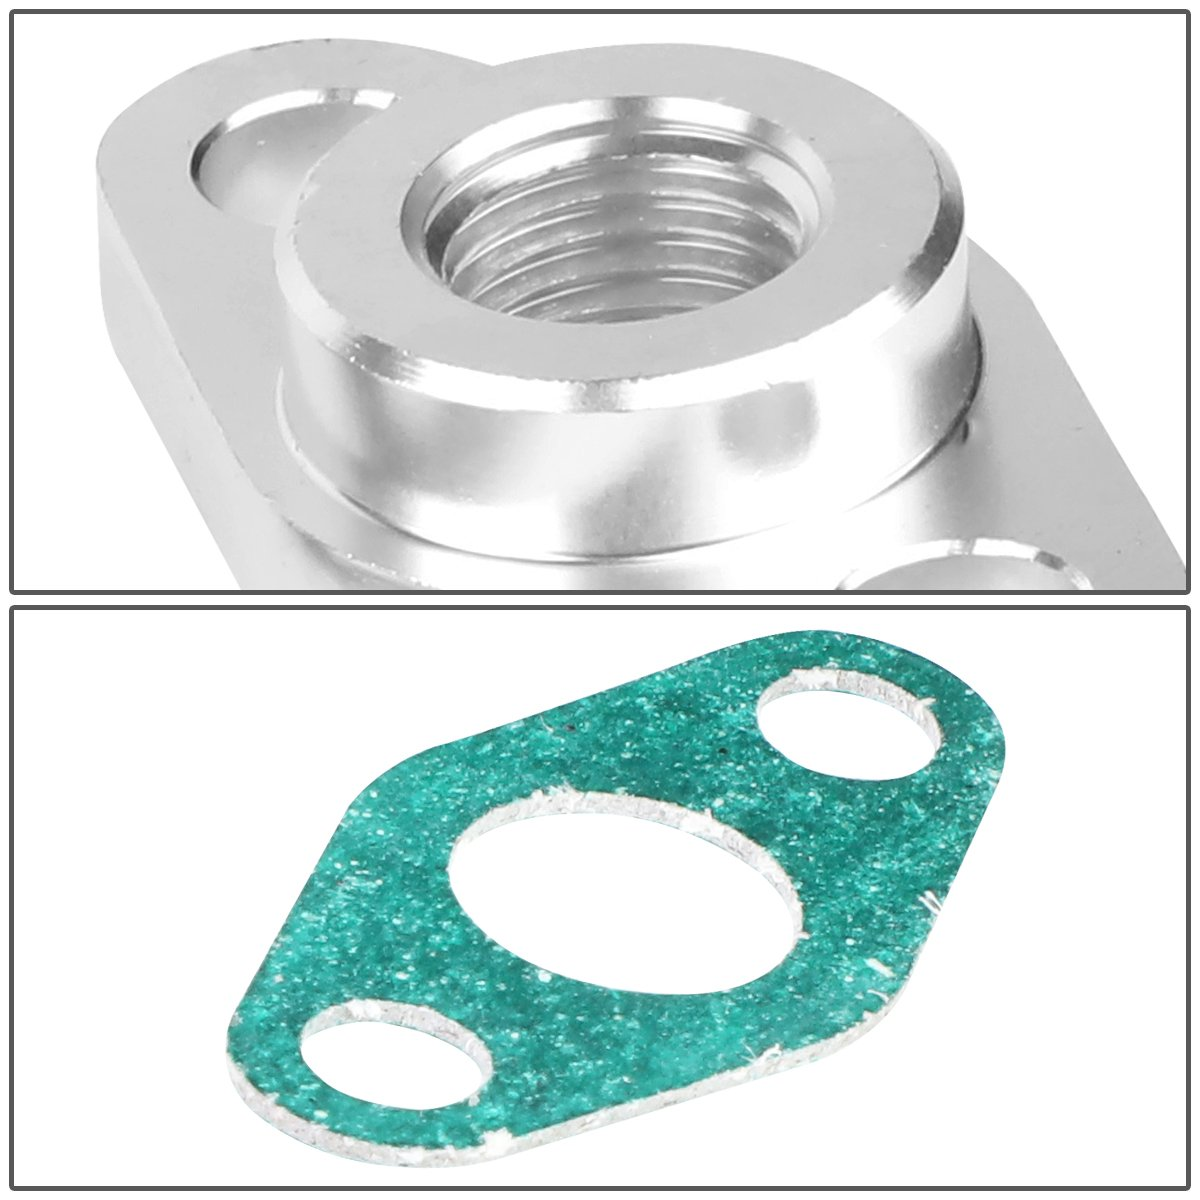 T3 NPT Adapter Fitting T4 Turbocharger Billet Aluminum Oil Feed 1//4 inches NPT Gasket /& Bolts